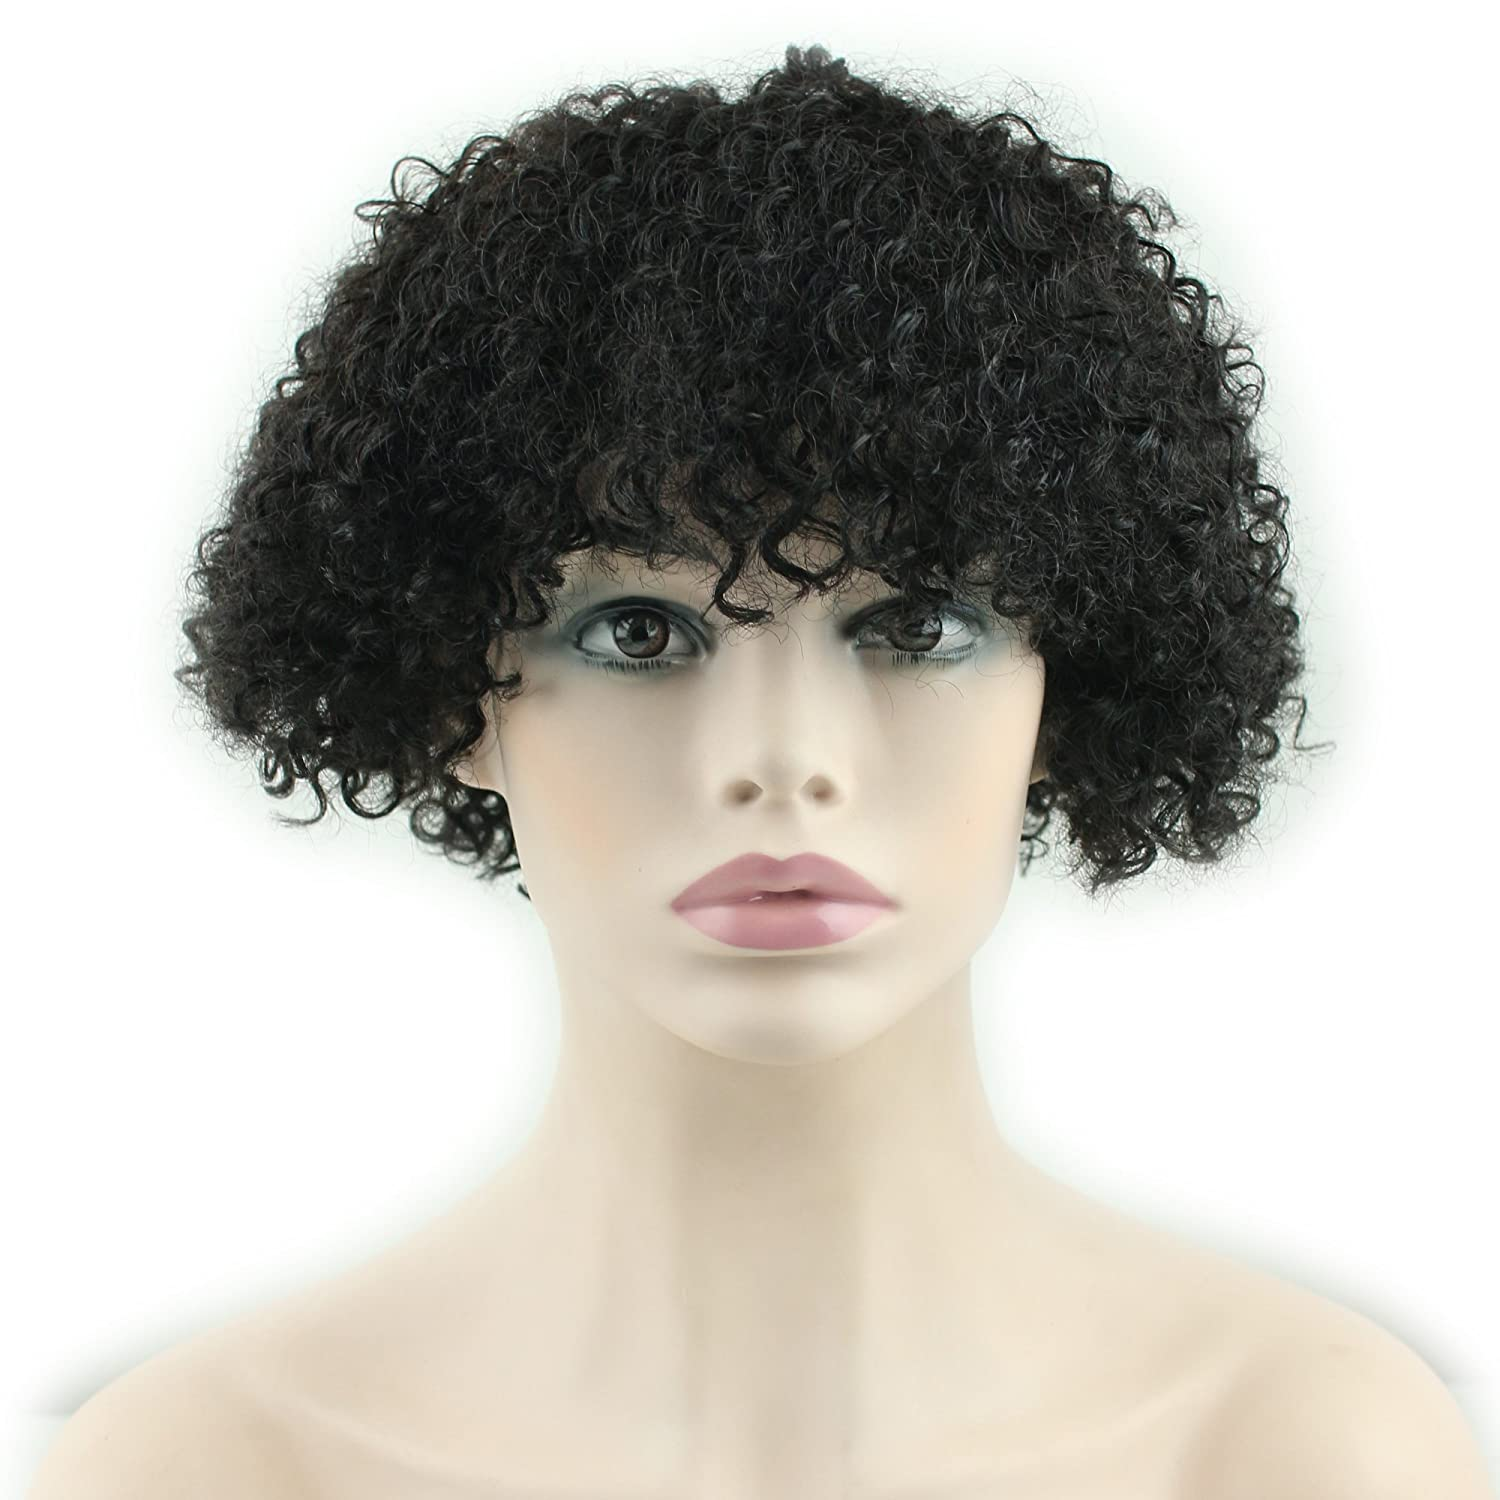 Amazon.com : Dreambeauty Short Kinky Curly Human Hair Wigs 100 ...